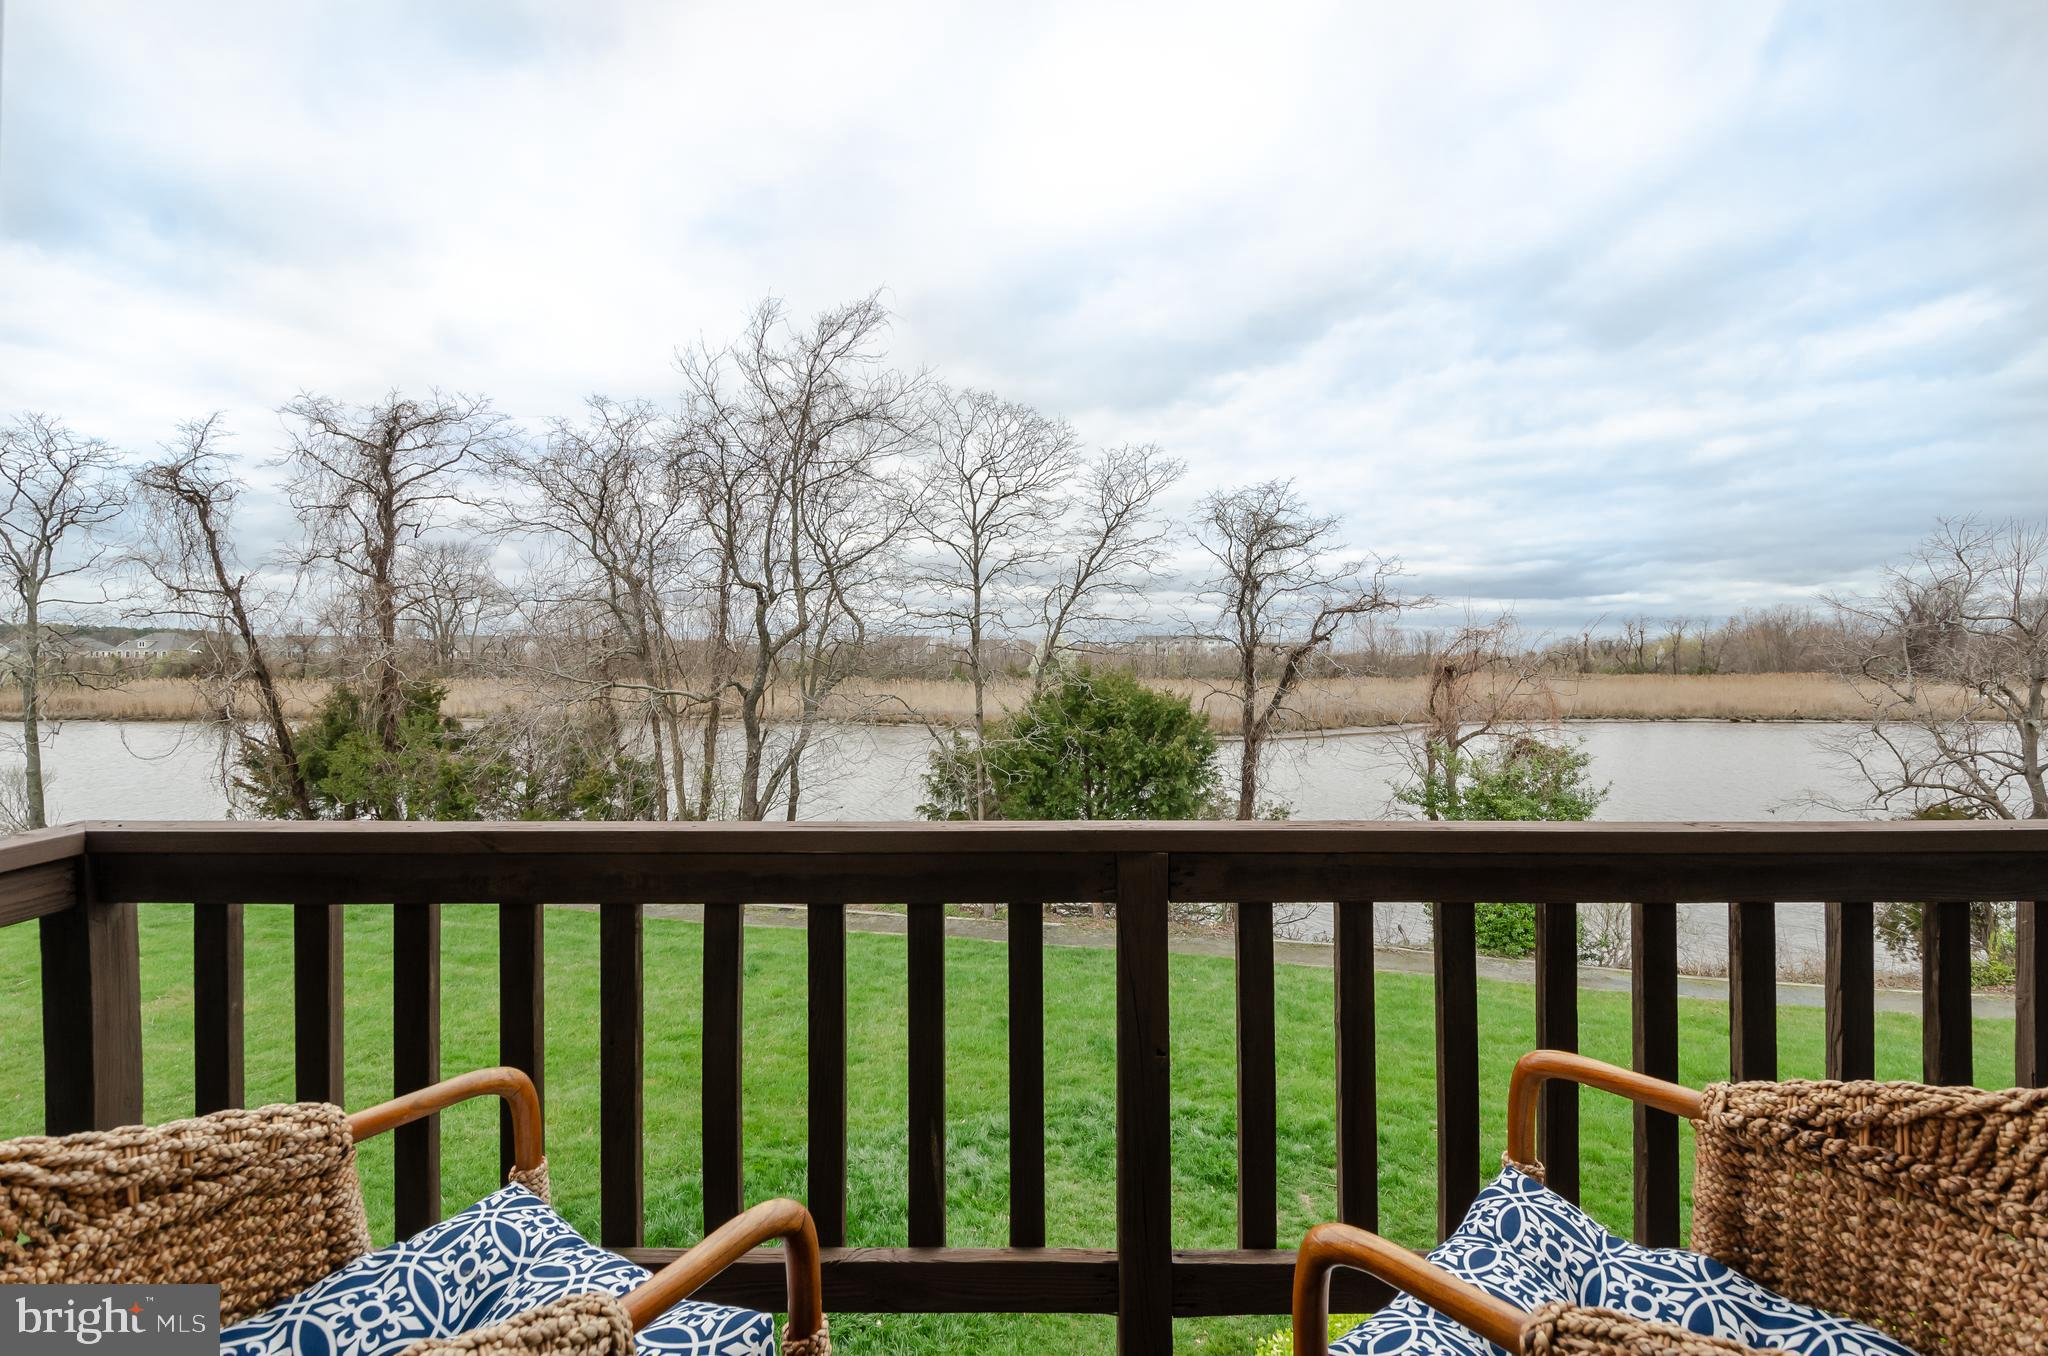 1103 Marion Quimby Dr, Stevensville, MD, 21666